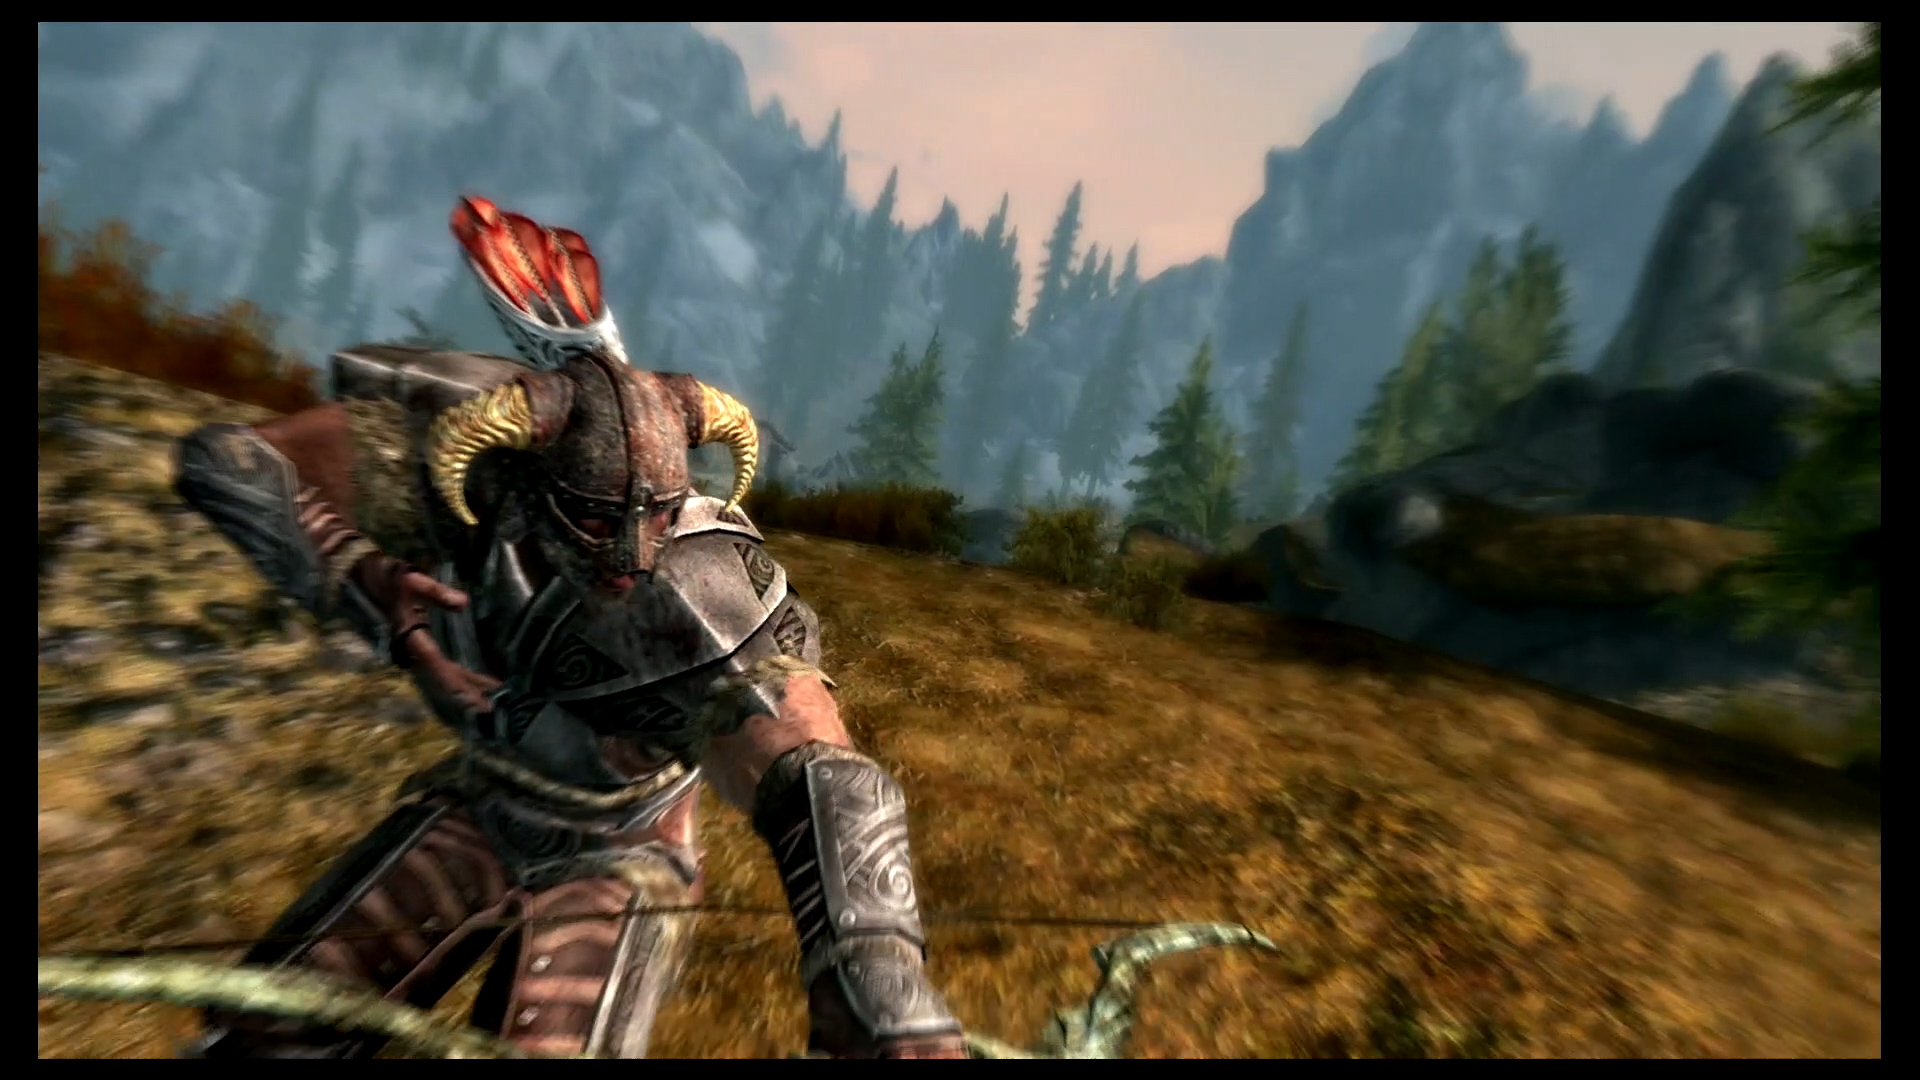 dragonborn shooting an arrow